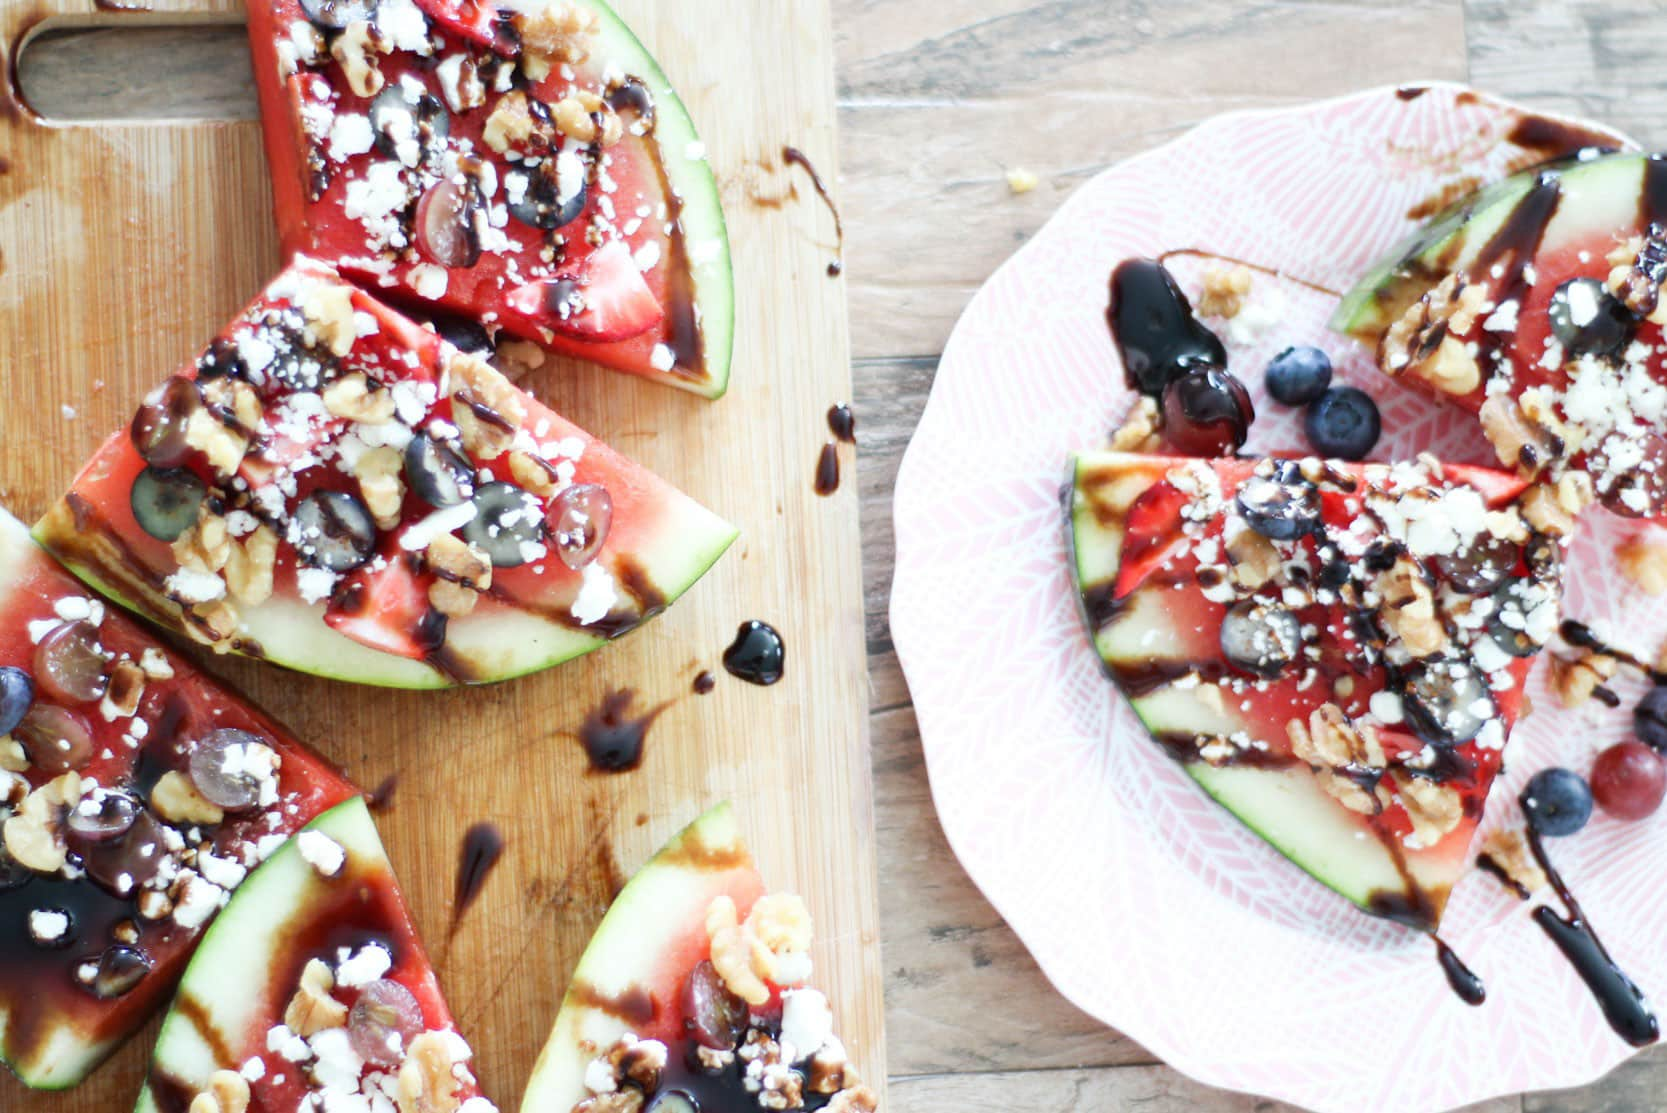 The Best Watermelon Pizza with Goat Cheese and Balsamic Glaze